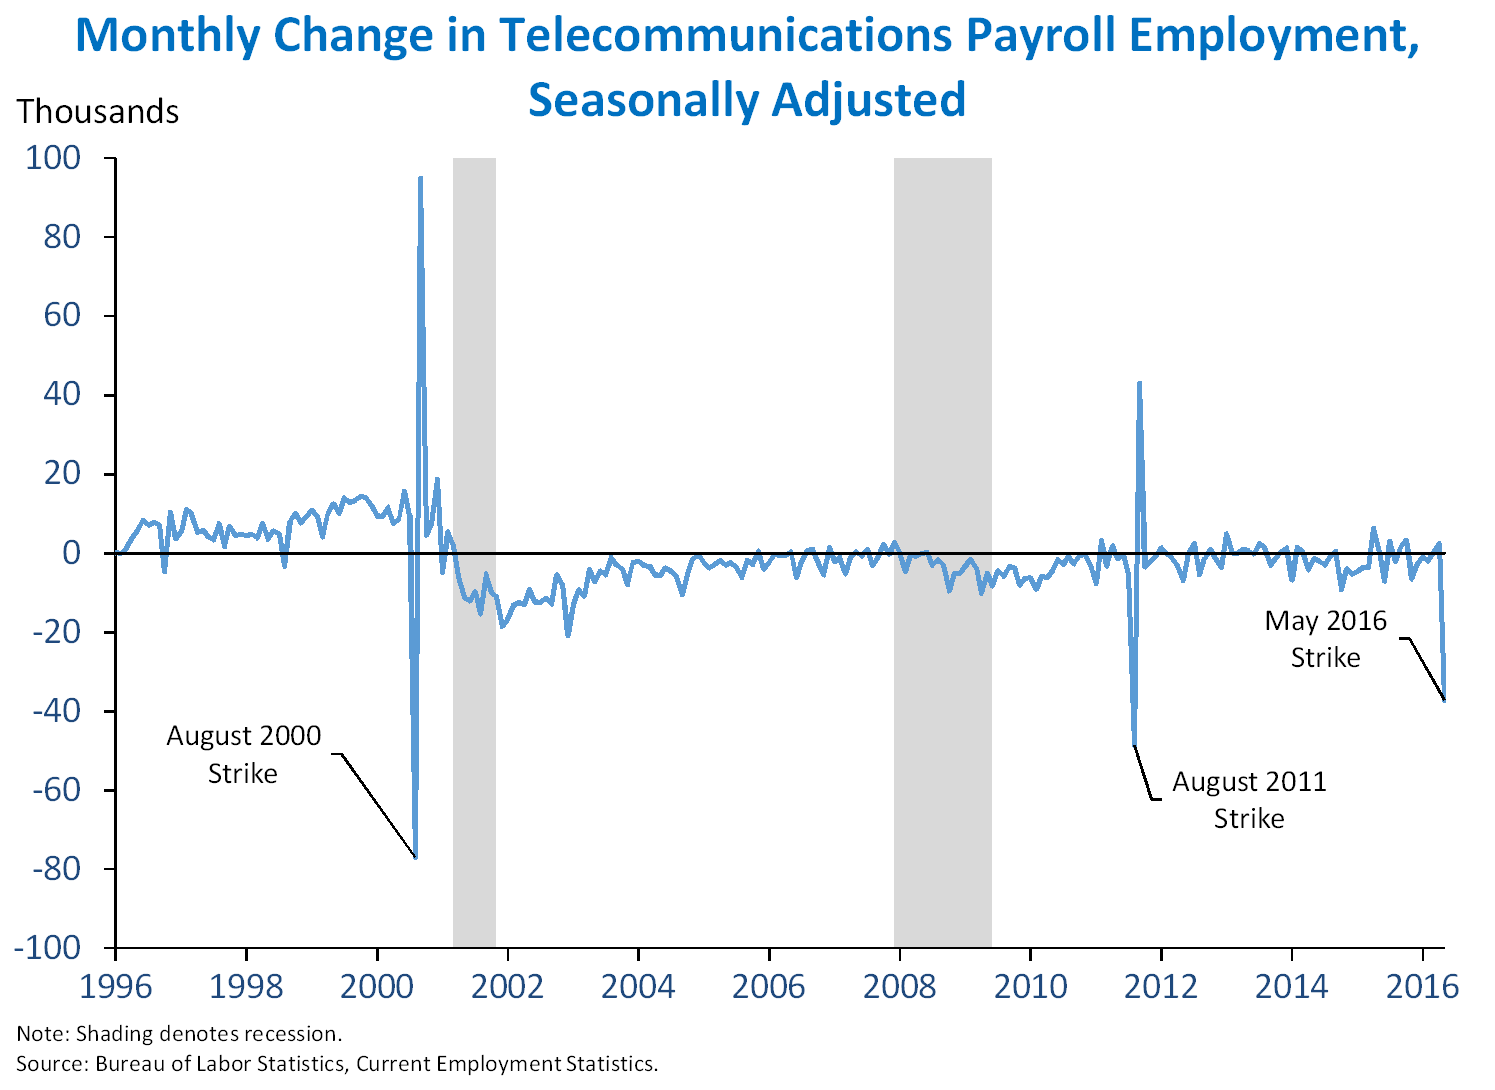 Monthly Change in Telecommunications Payroll Employment, Seasonally Adjusted